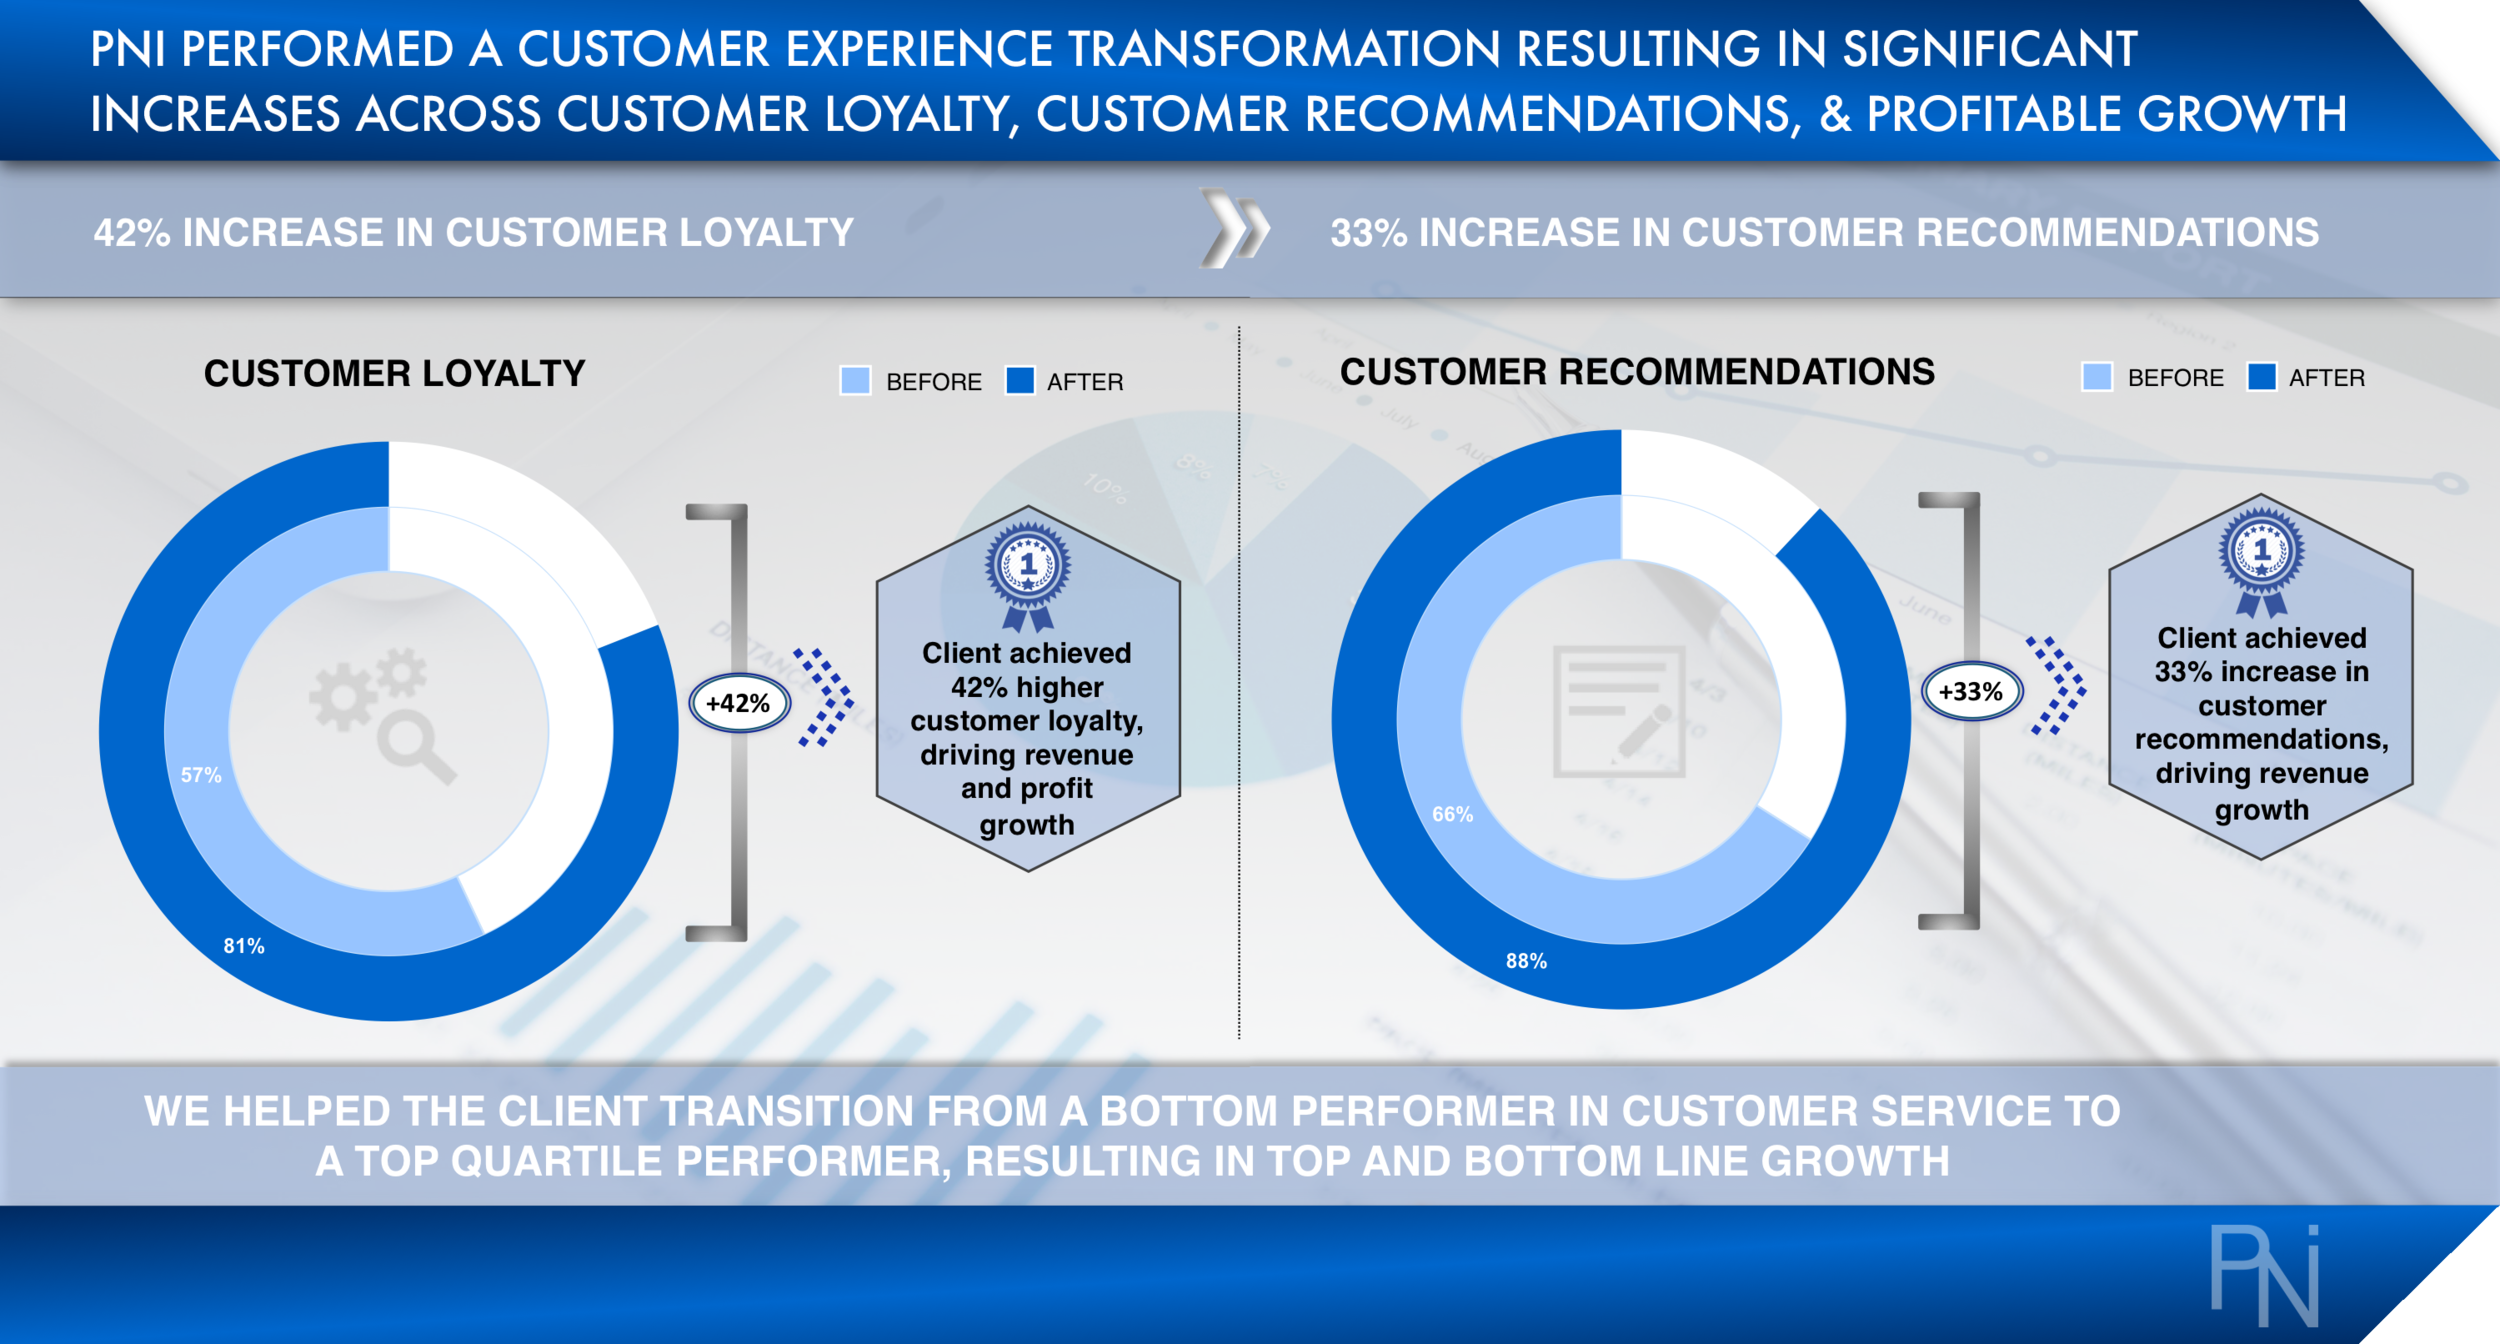 Case Study 3 - Customer Experience (PNI Consulting).png